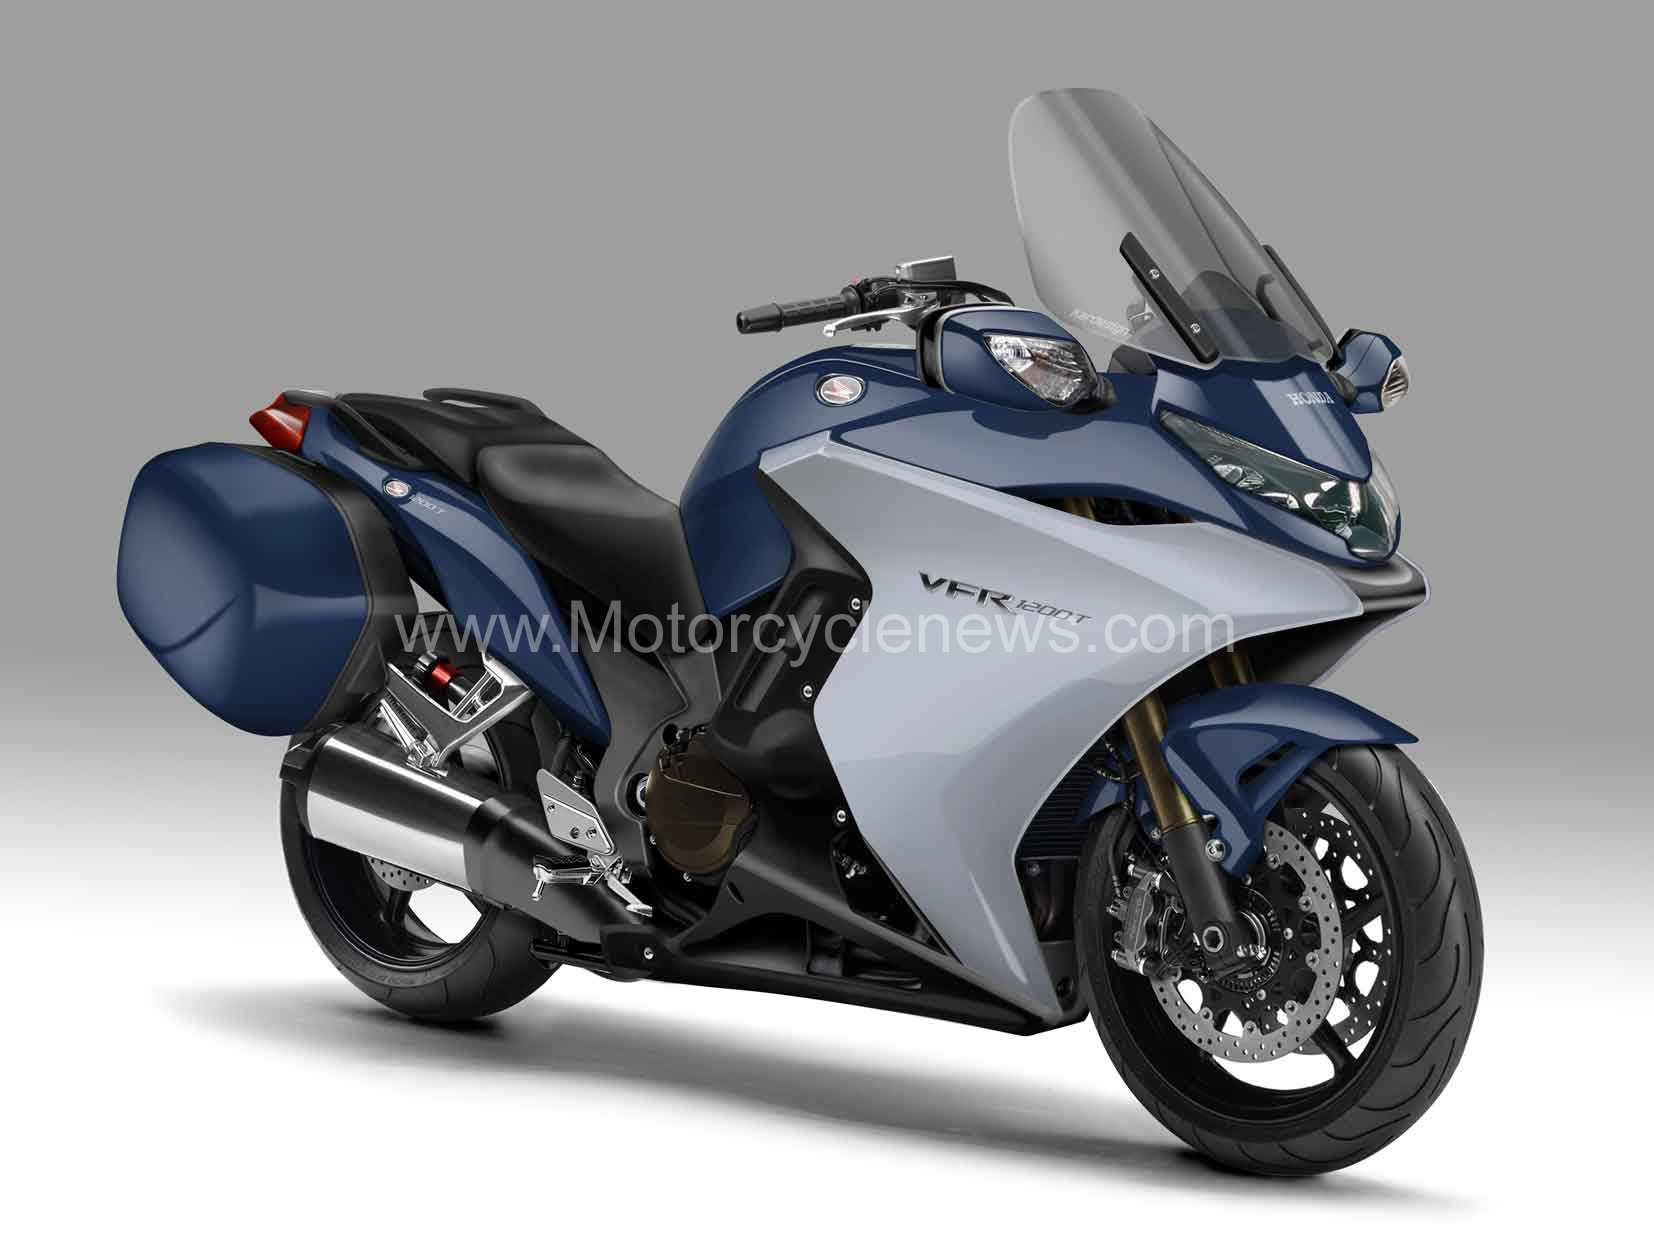 2010 honda vfr1200t rendering top speed. Black Bedroom Furniture Sets. Home Design Ideas